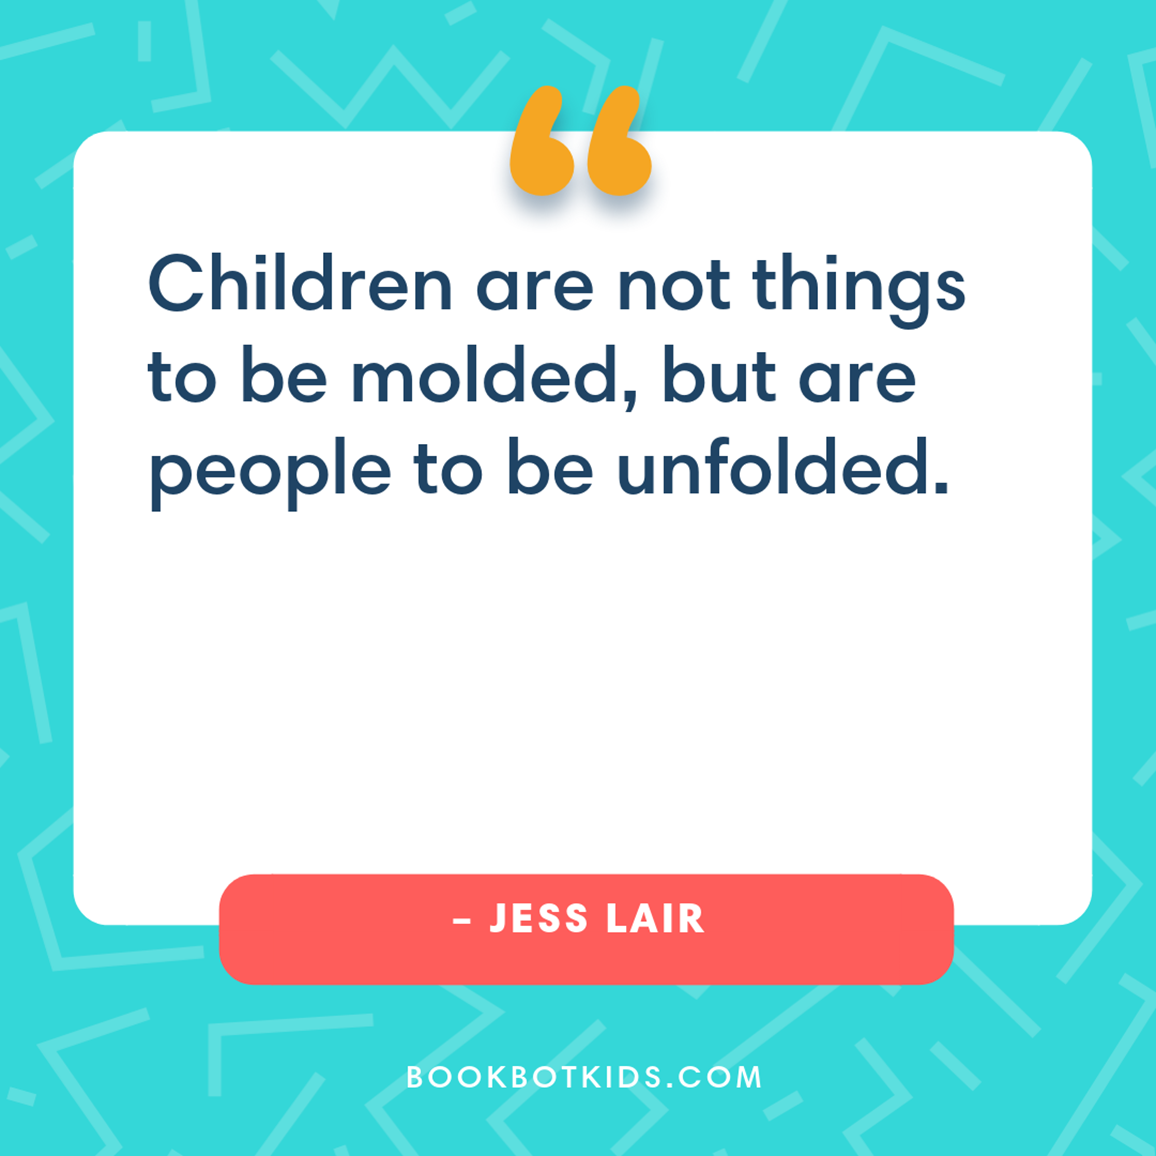 Children are not things to be molded, but are people to be unfolded. – Jess Lair